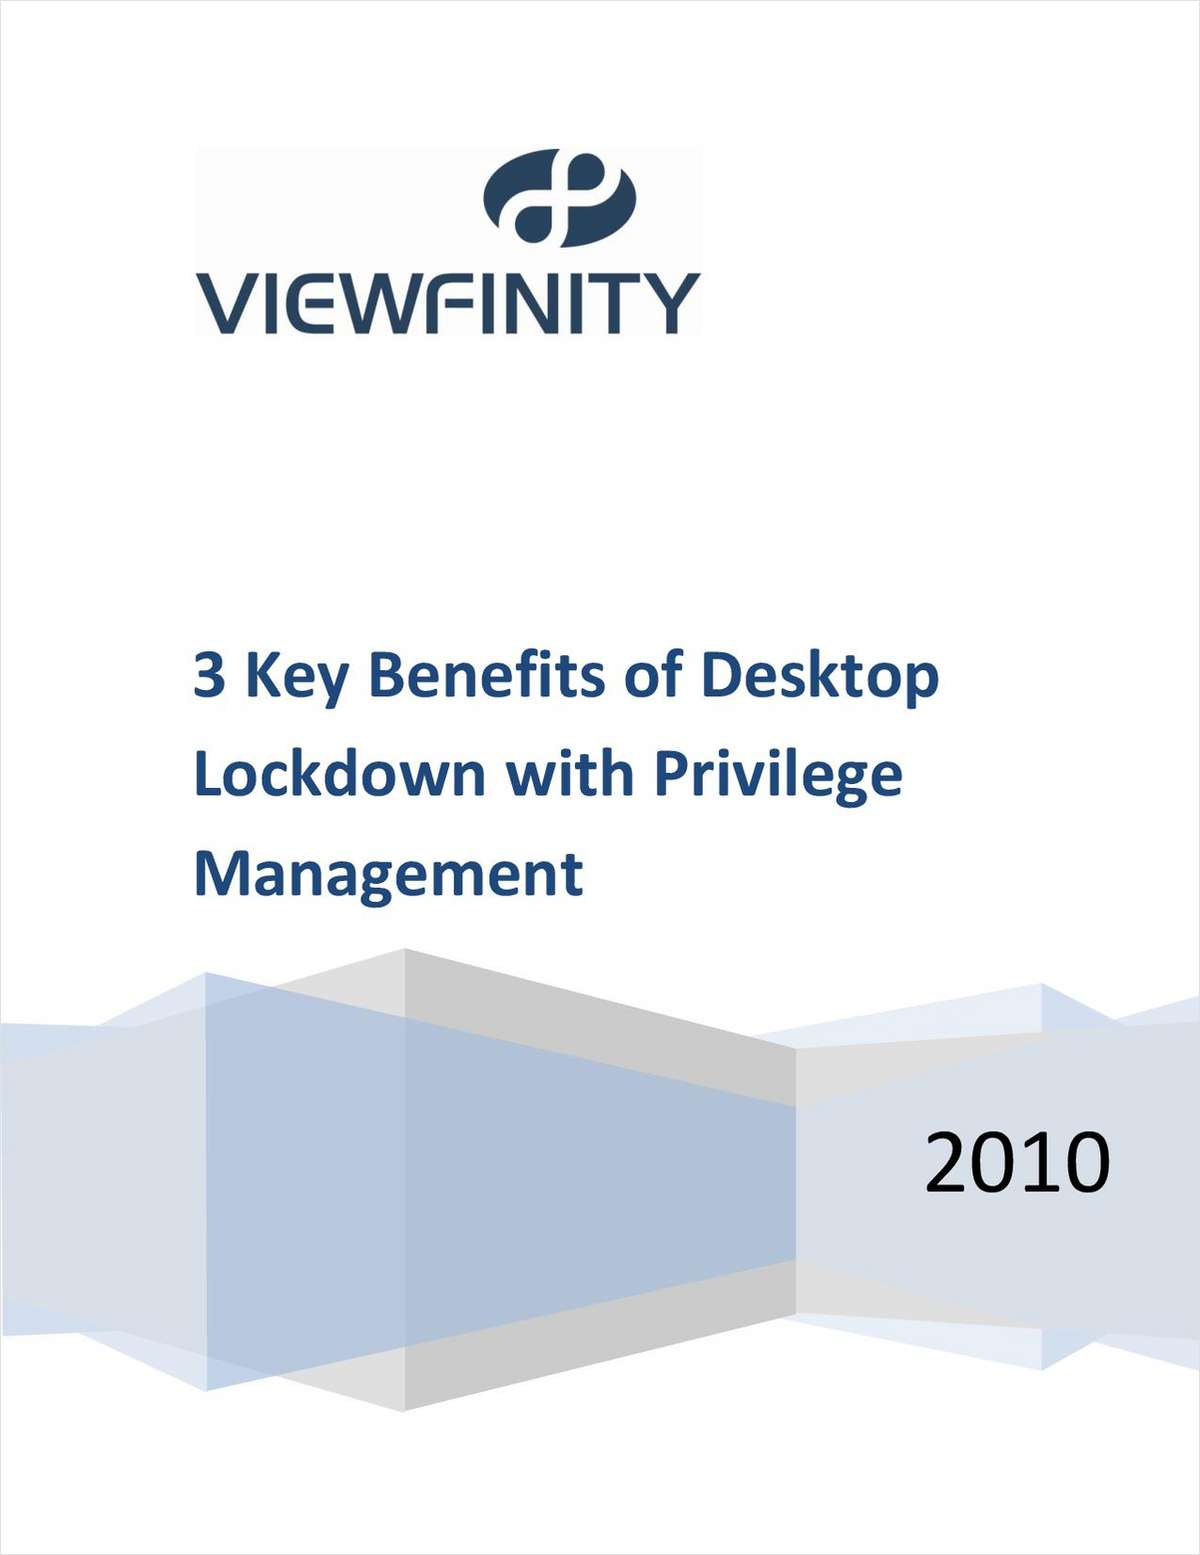 3 Key Benefits of Desktop Lockdown with Privilege Management